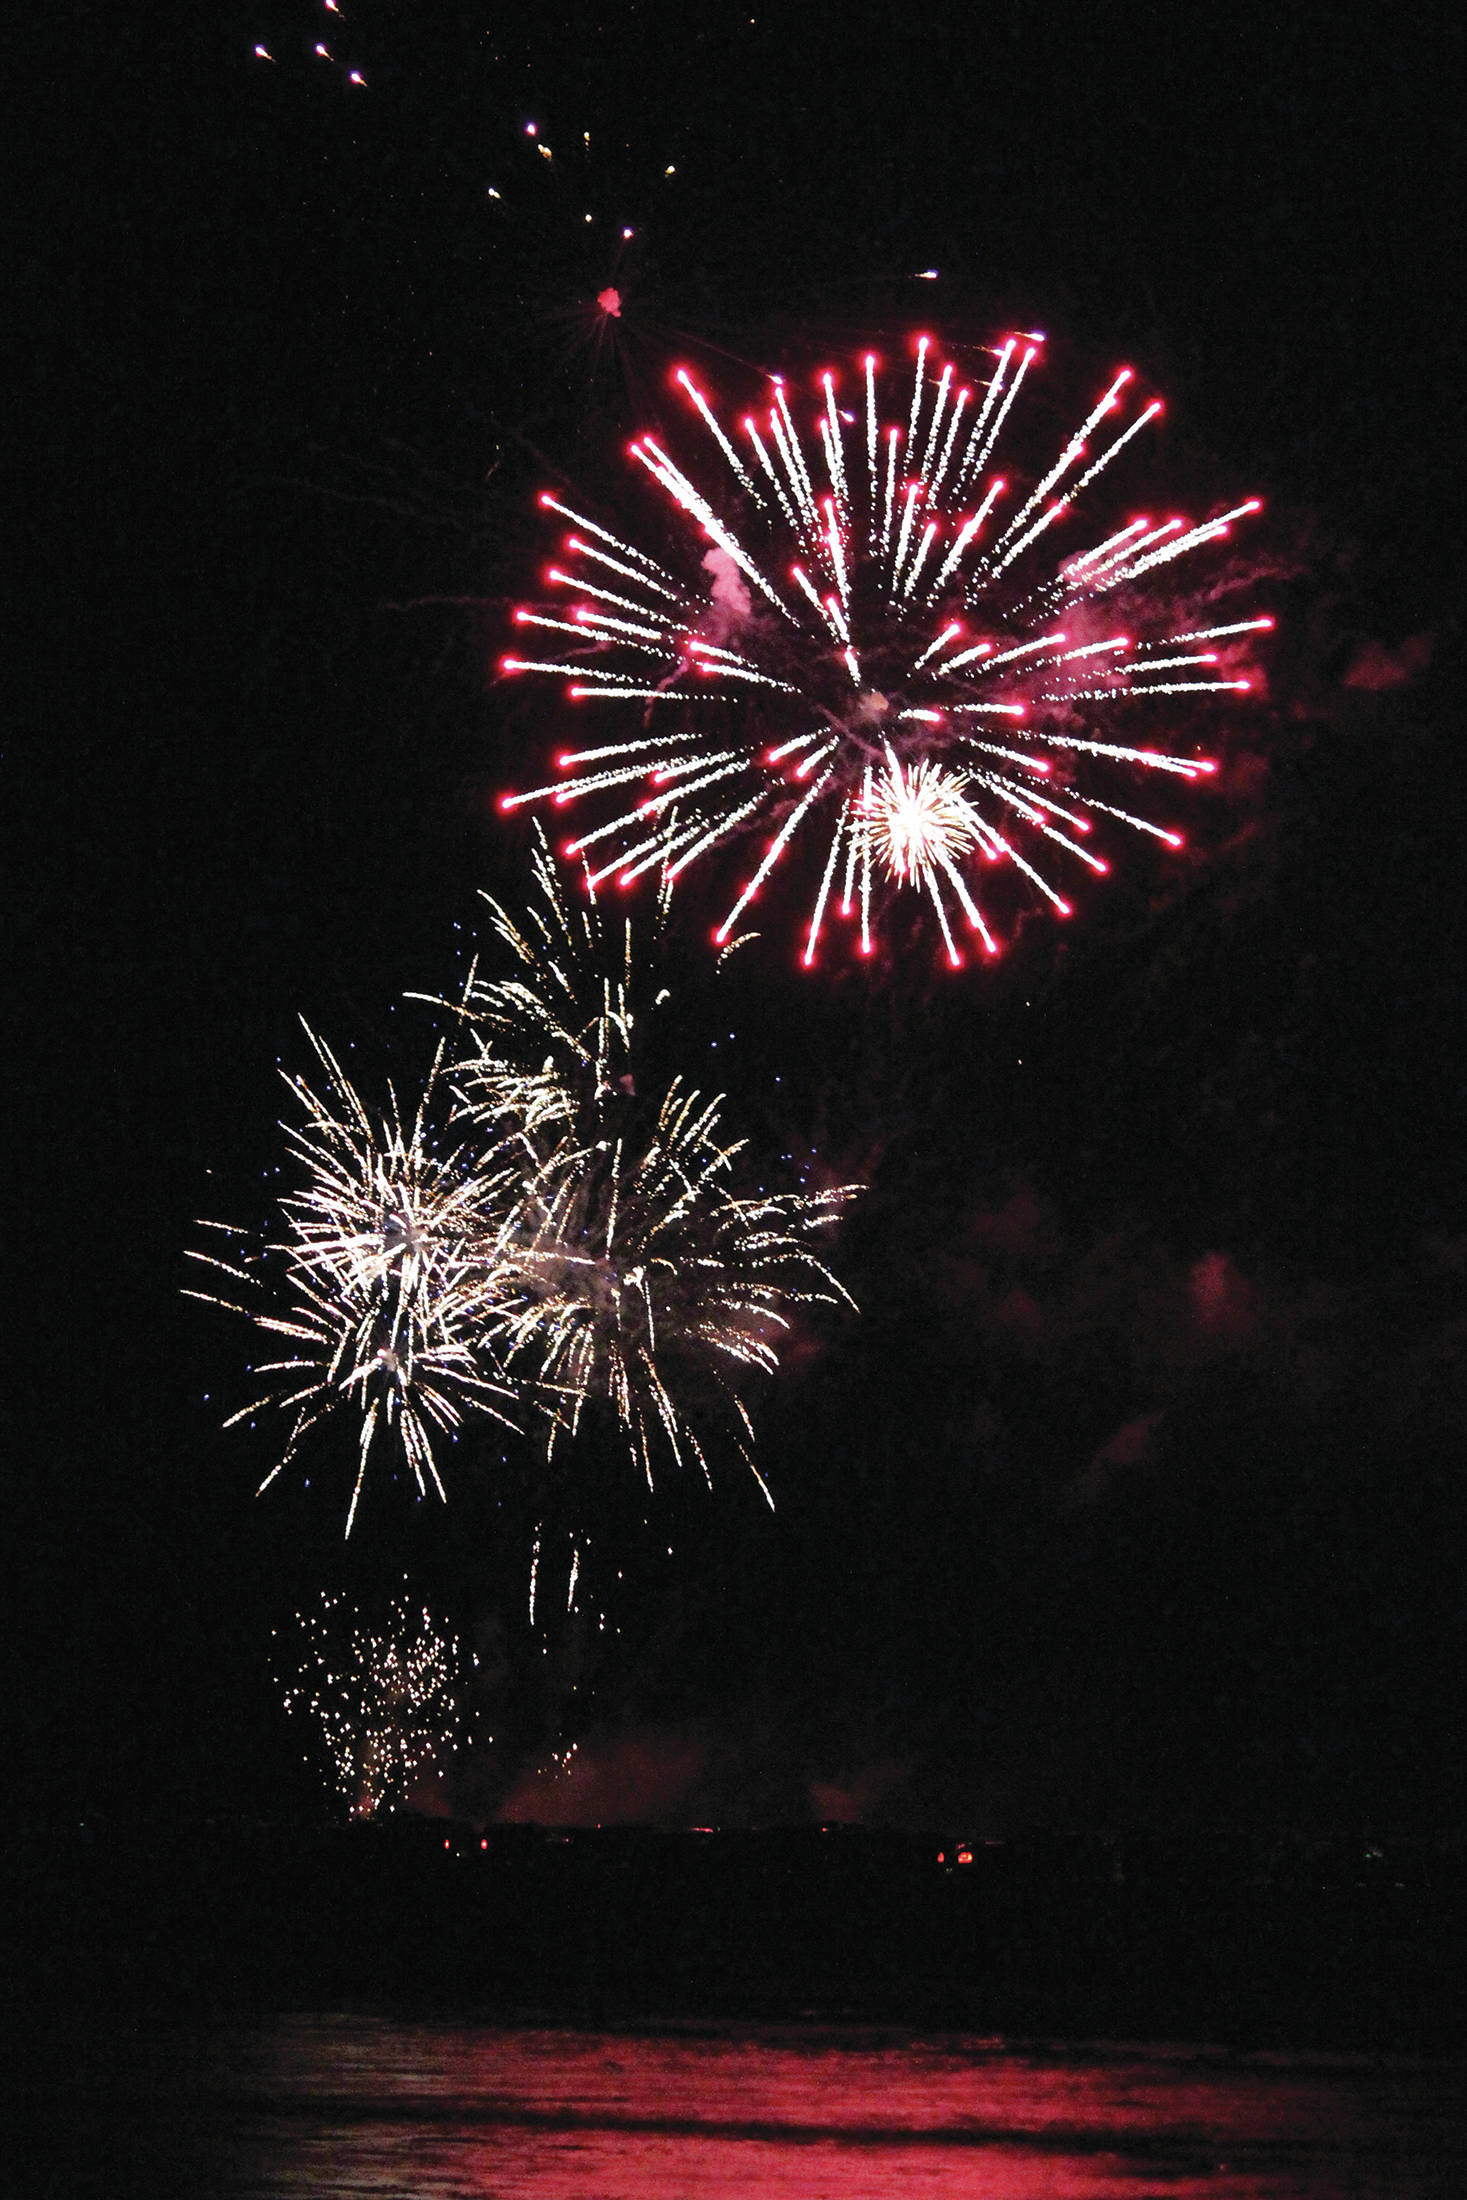 Fireworks explode above the Homer Spit on Dec. 31, 2020 as part of the third annual crowdfunded fireworks in Homer, Alaska. (Photo by Megan Pacer/Homer News)